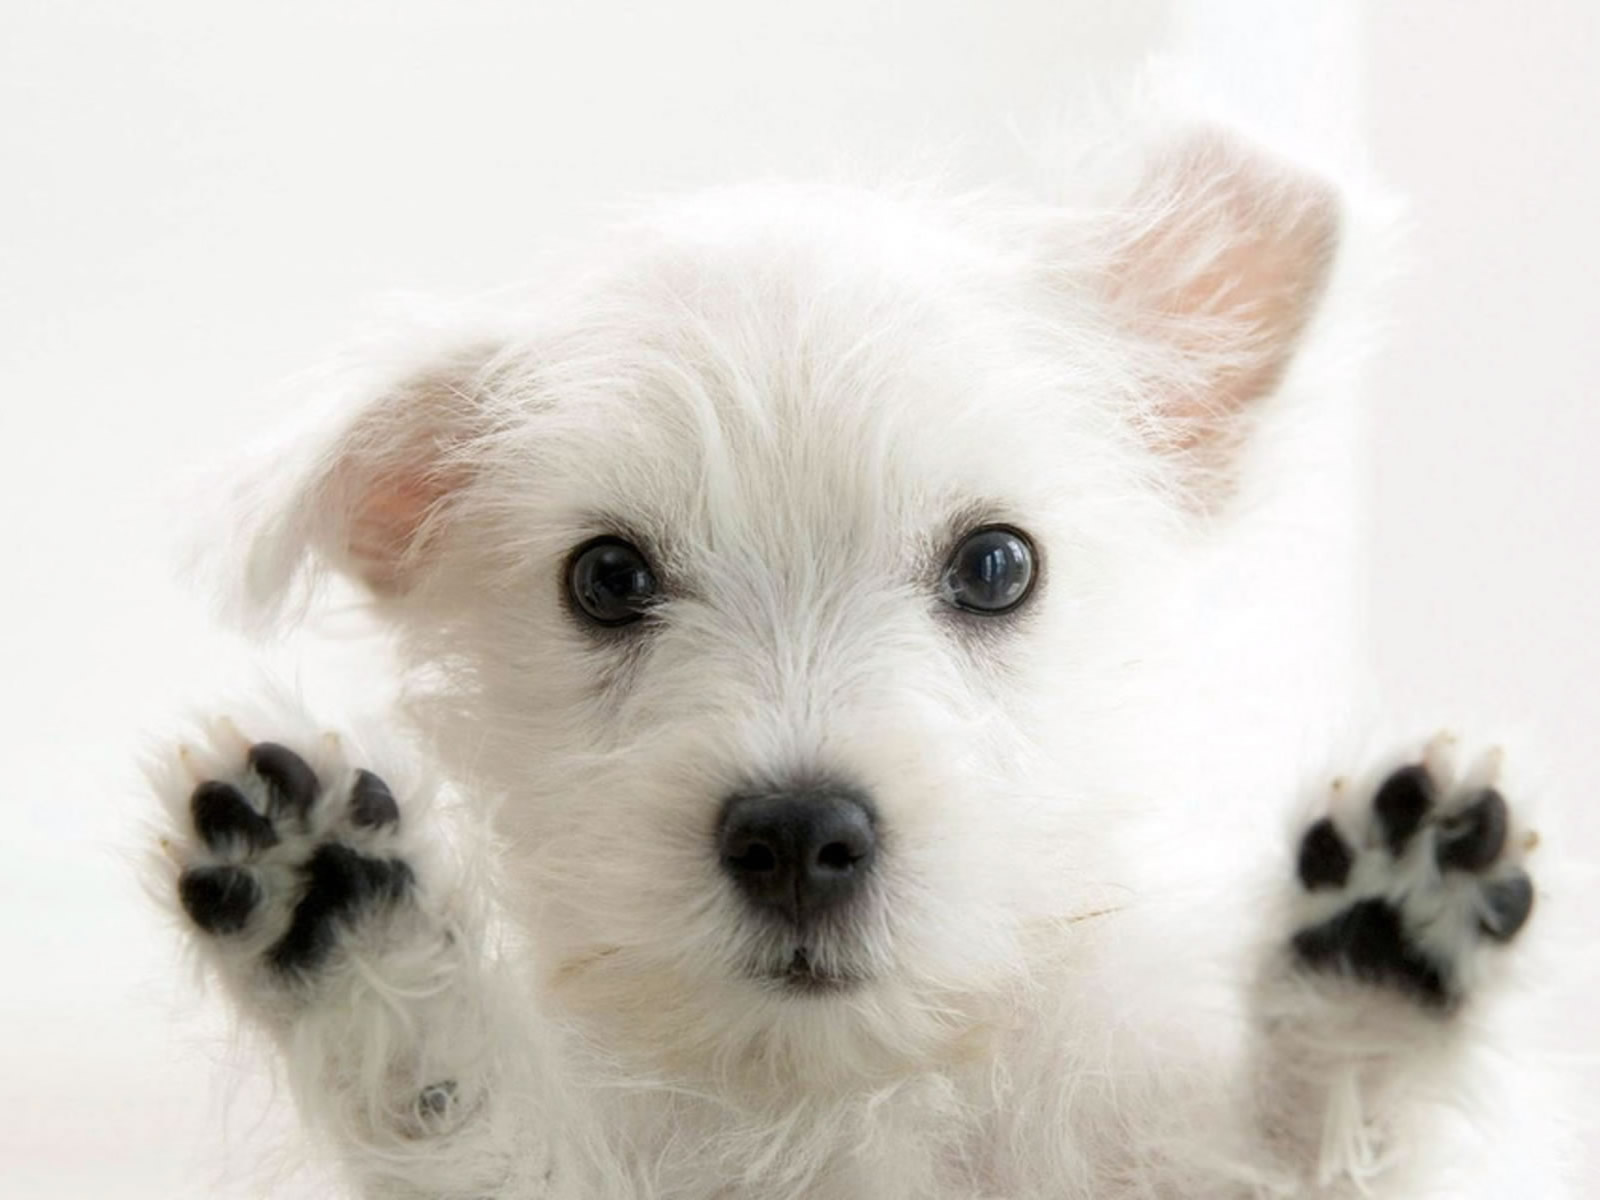 So cute puppies wallpaper 15897245 fanpop - Funny And Cute Dog Pictures 40 Cool Wallpaper Funny And Cute Dog Pictures 40 Cool Wallpaper